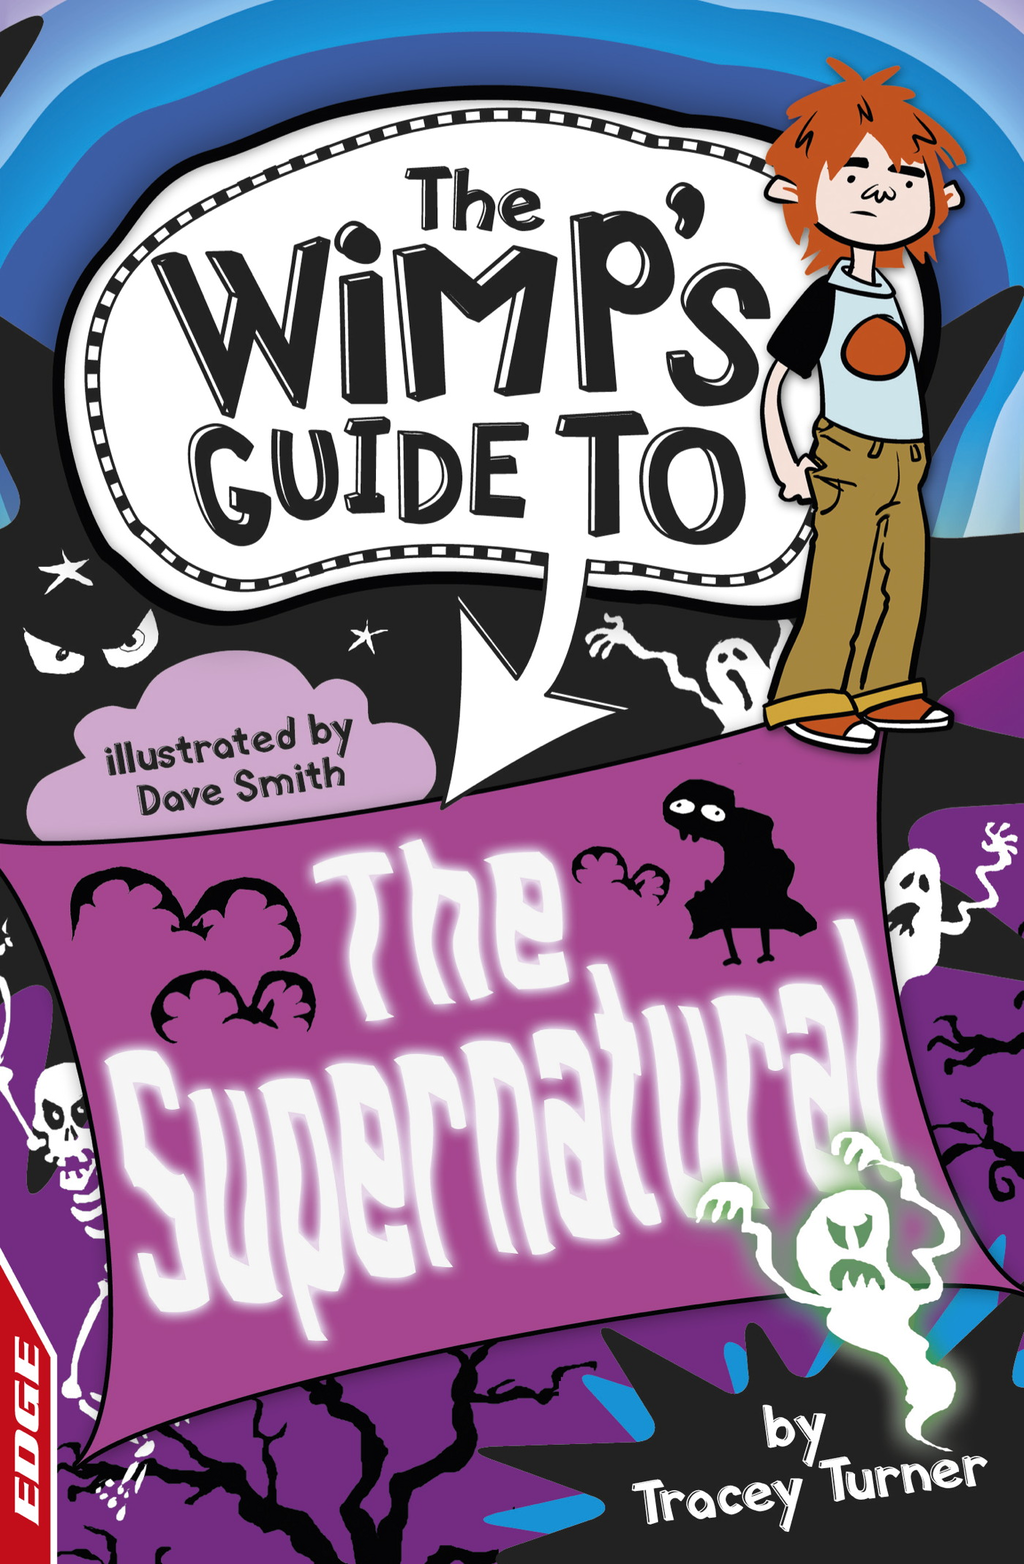 The Supernatural EDGE: The Wimp's Guide to: